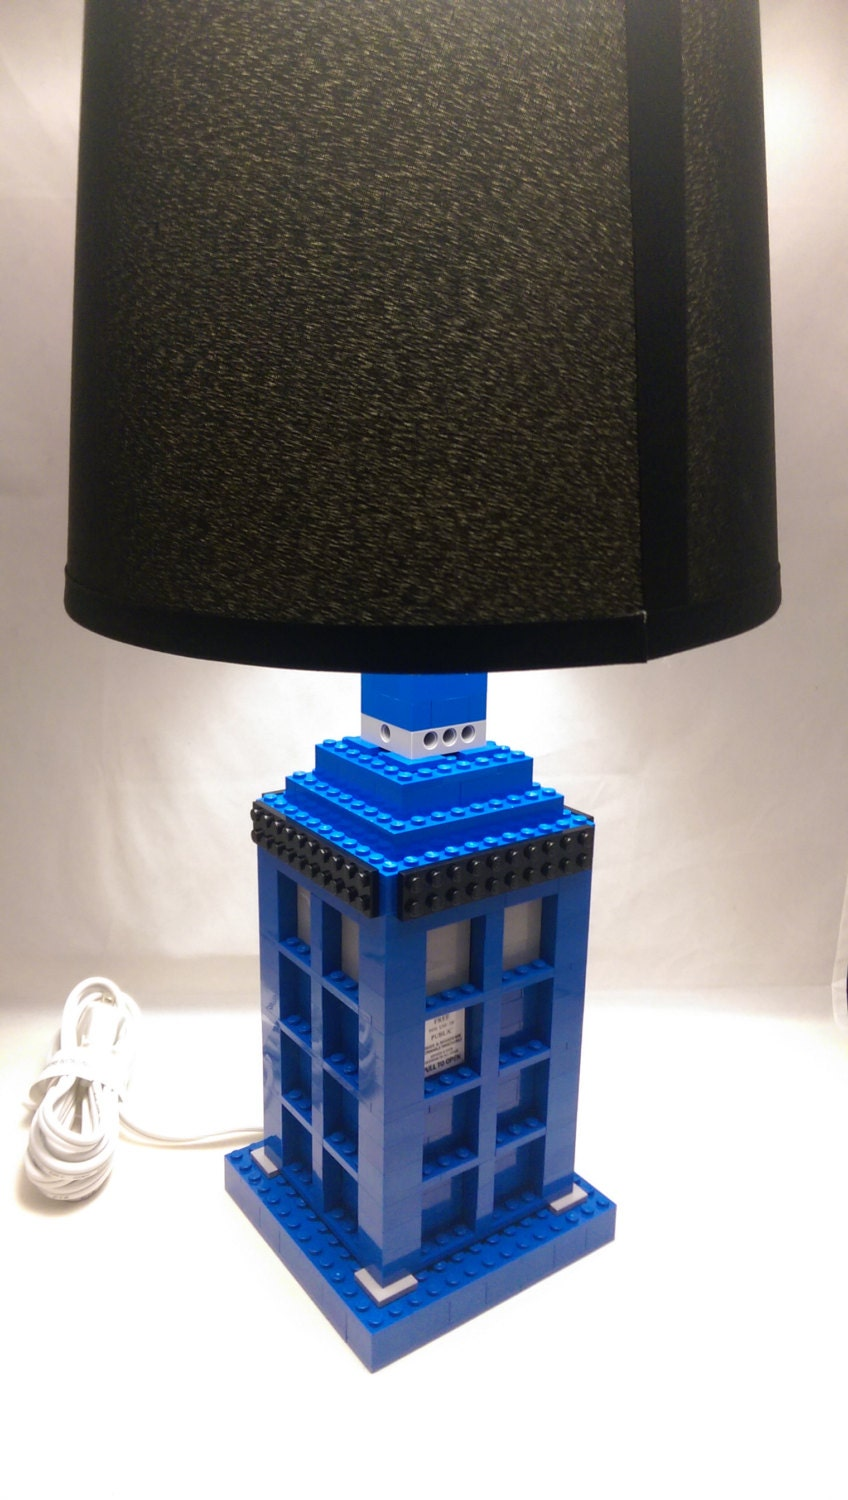 Doctor Who Tardis Lego Lamp Doctor Who Lamp  Lego Lamp. Tidy Drawers. Industrial Chic Desk. Flip Top Desk. Wooden Desk Accessories. Roccaforte Game Desk. High Top Outdoor Table. Cabinet With Doors And Drawers. Motorized Sit Stand Desk